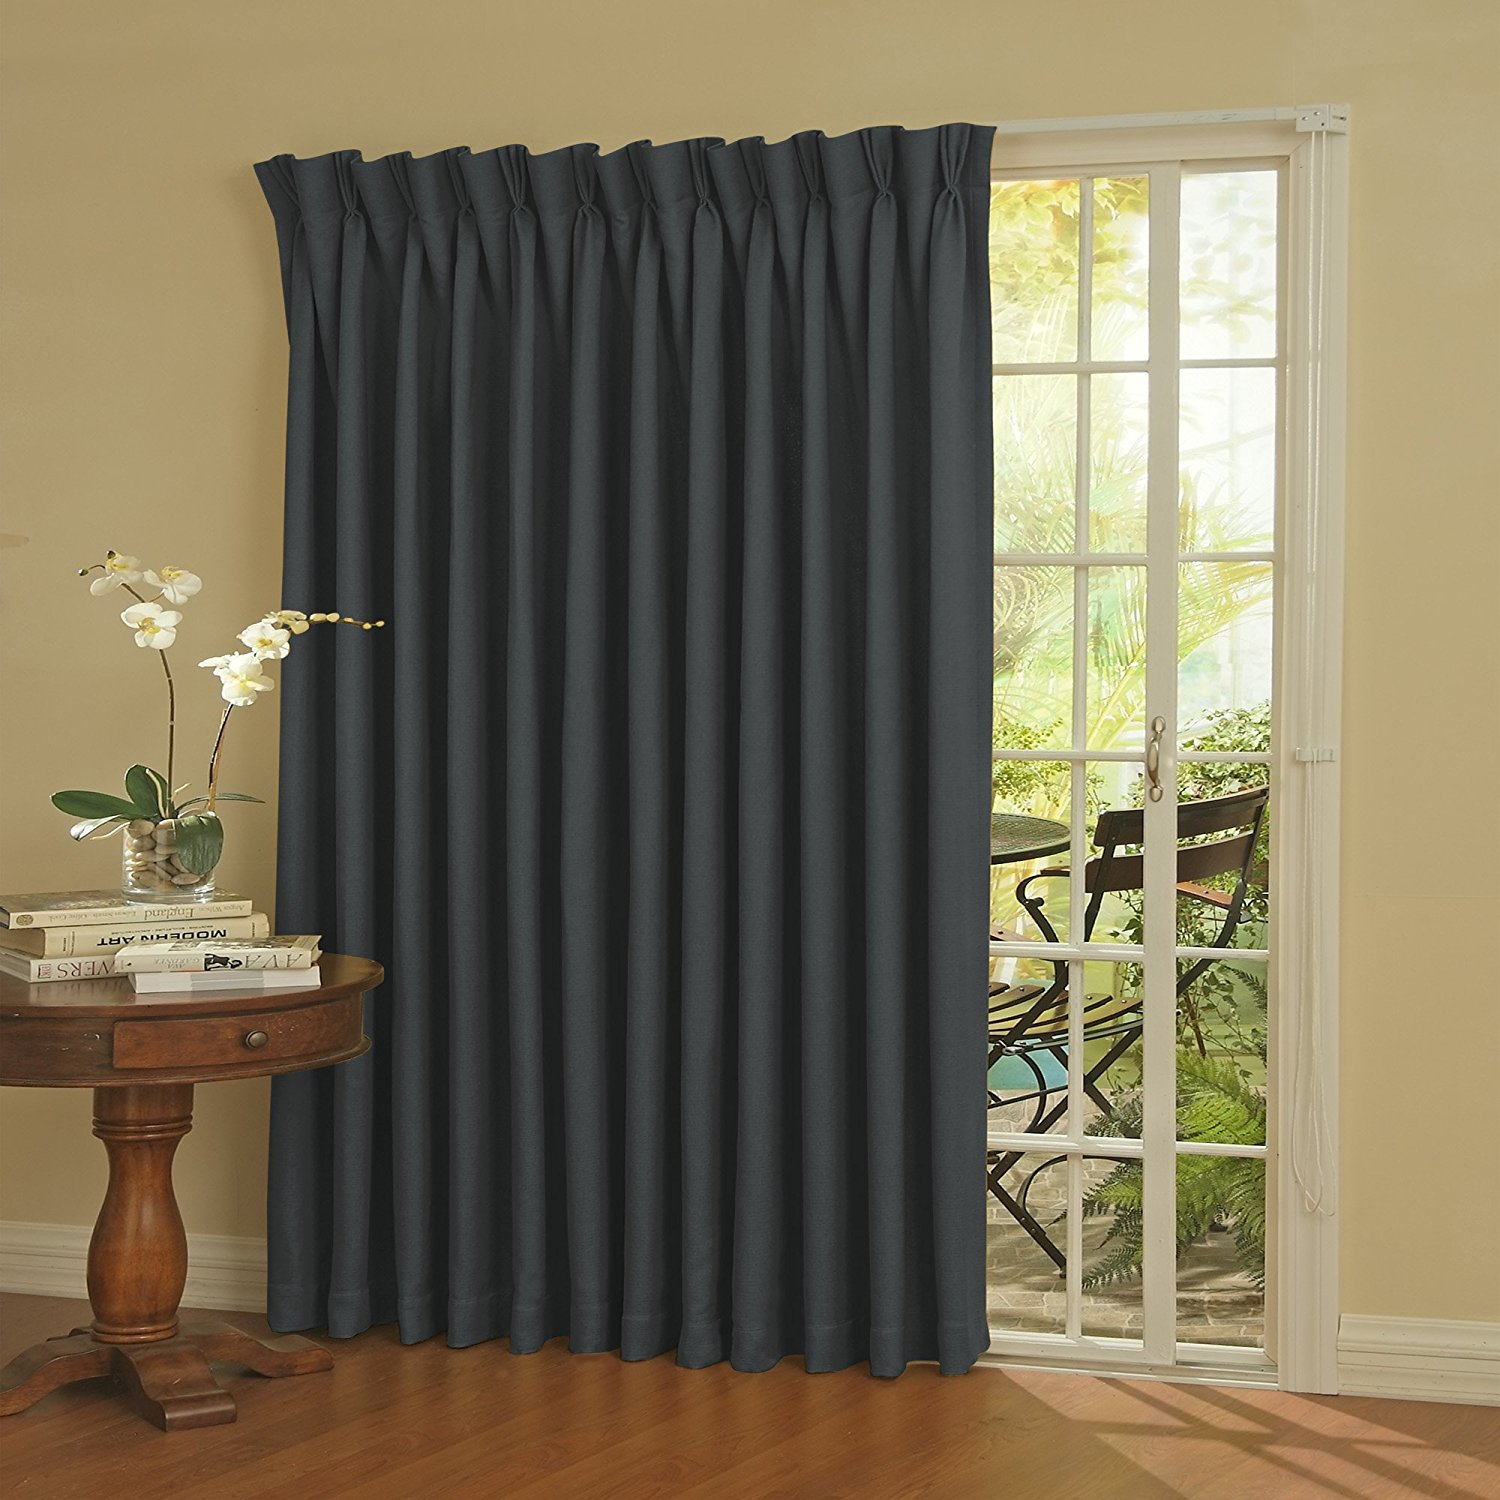 Cheap Blackout Curtains for Inspiring Home Decorating Ideas: Curtains That Block Light | Blackout Draperies | Cheap Blackout Curtains